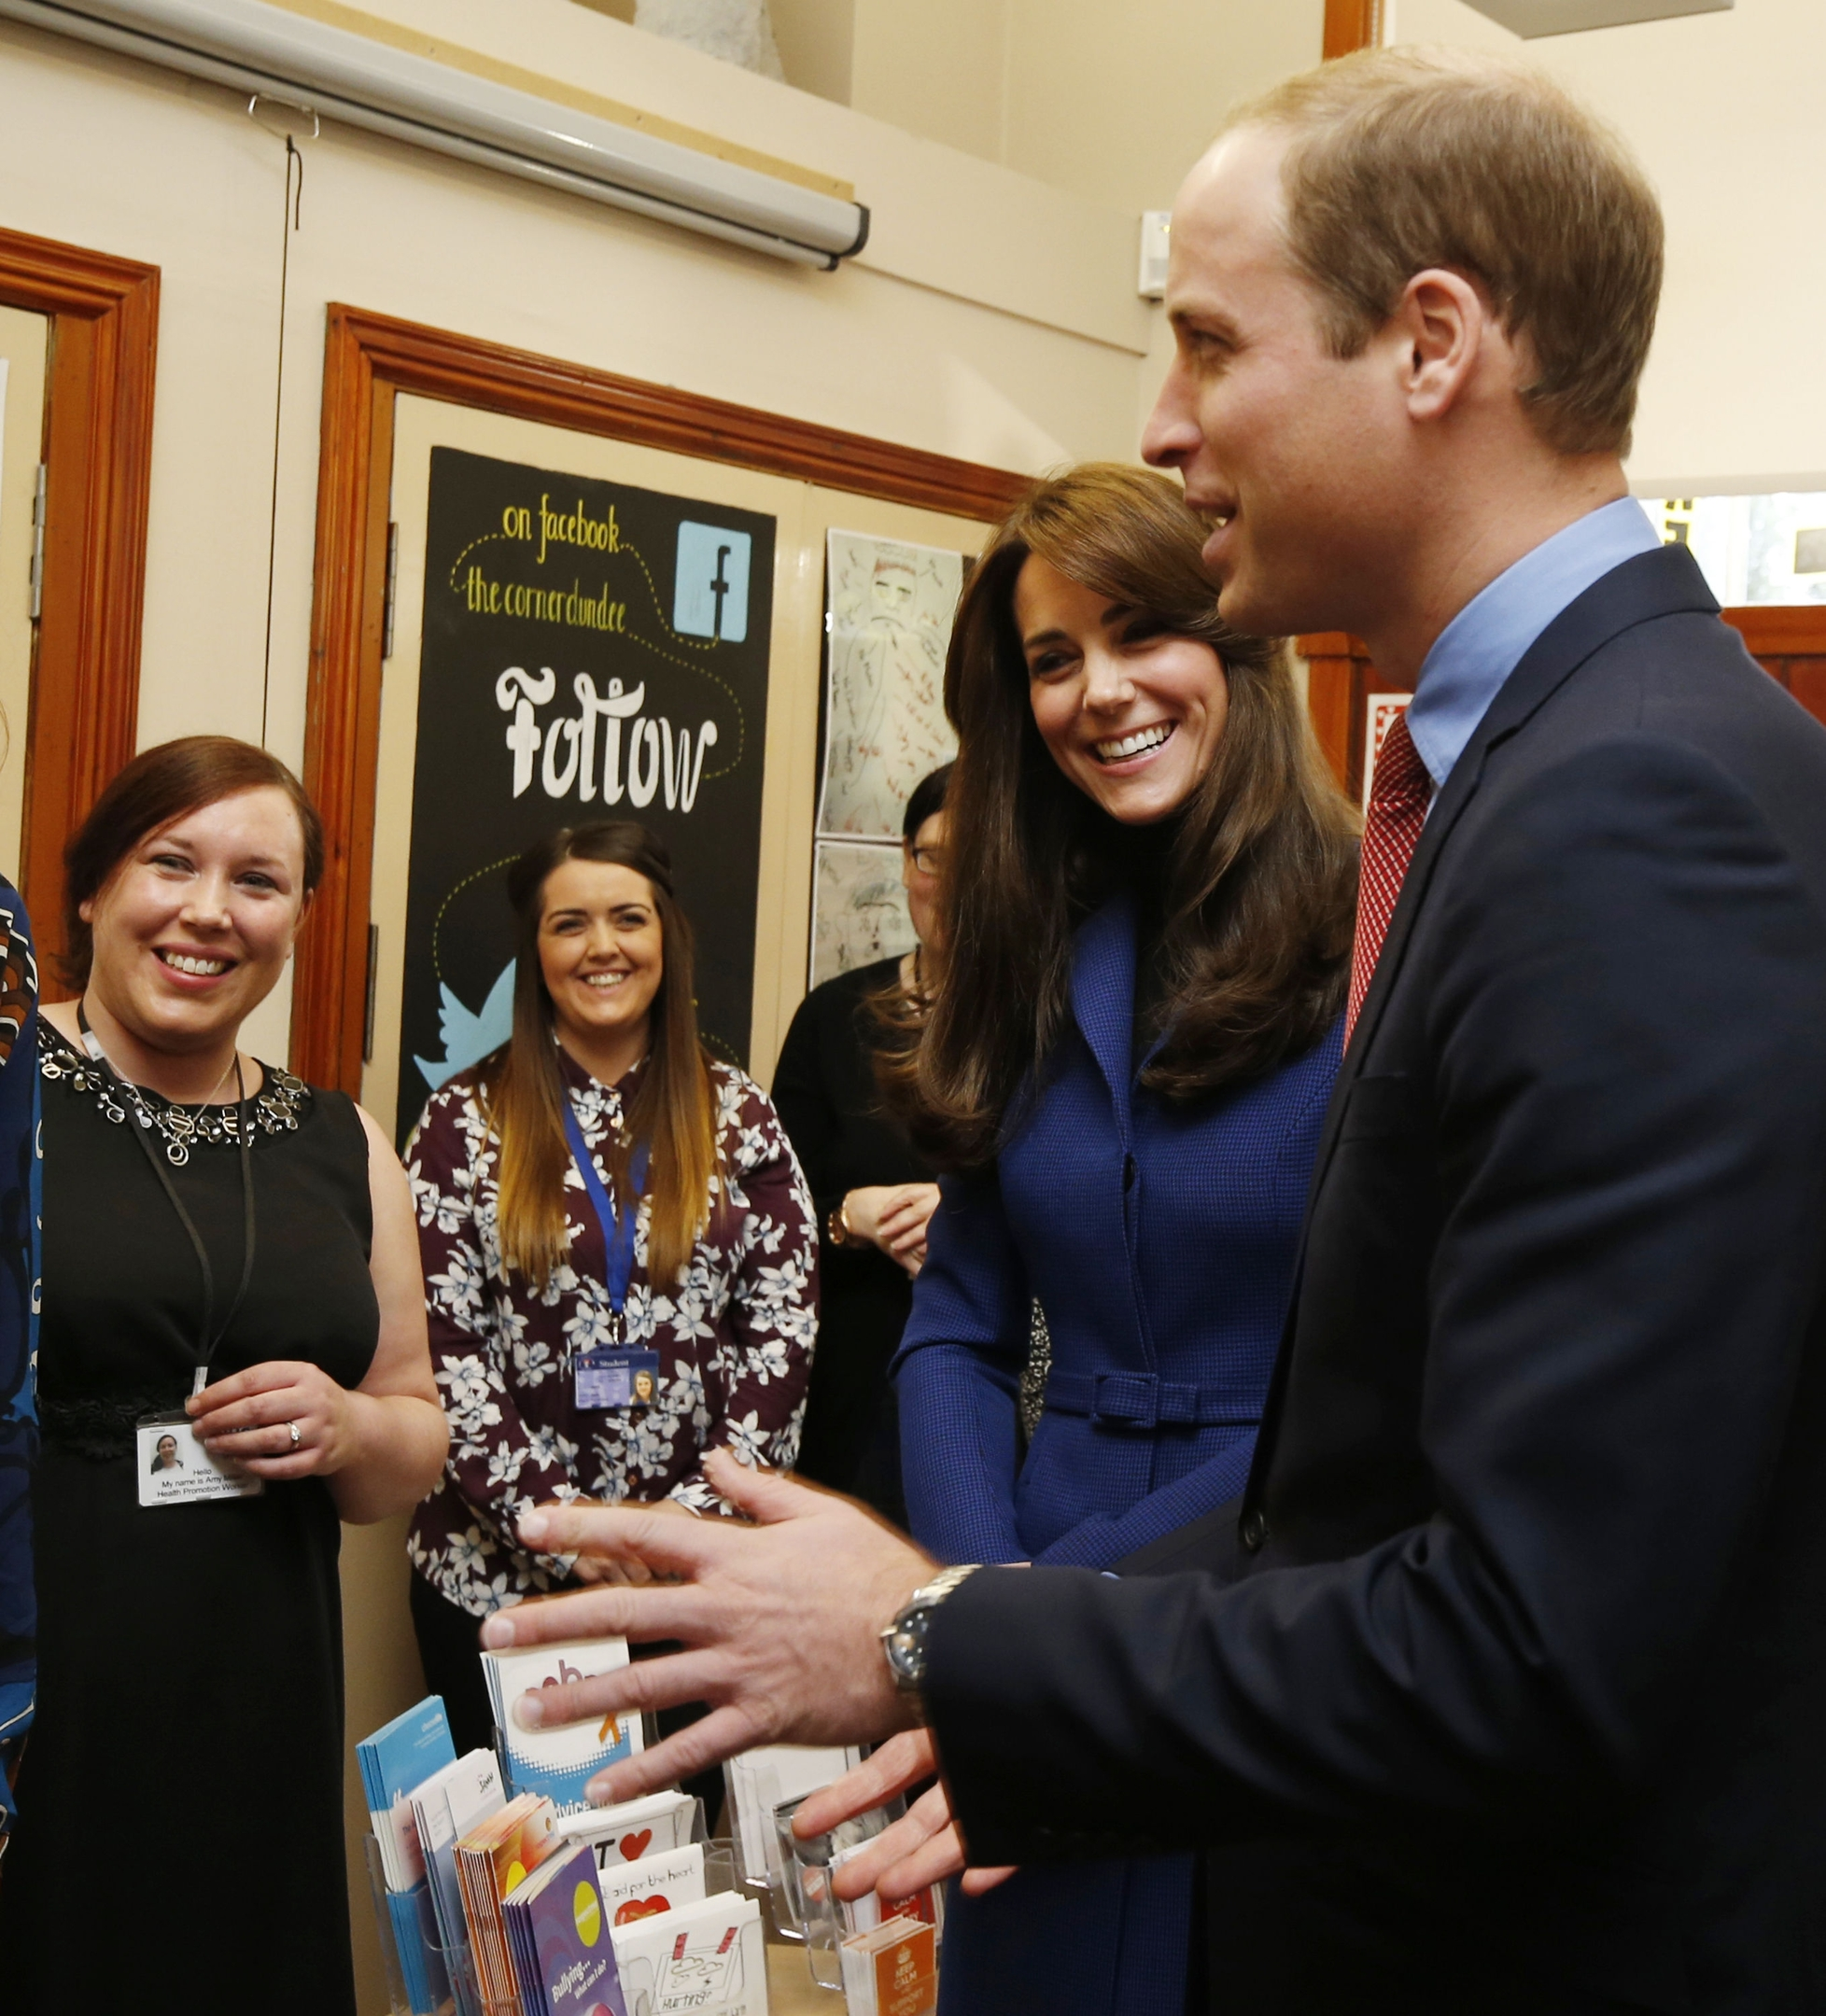 The Duke and Duchess of Cambridge during their visit to The Corner where they participated in an anti-bullying workshop as part of their visit to Dundee